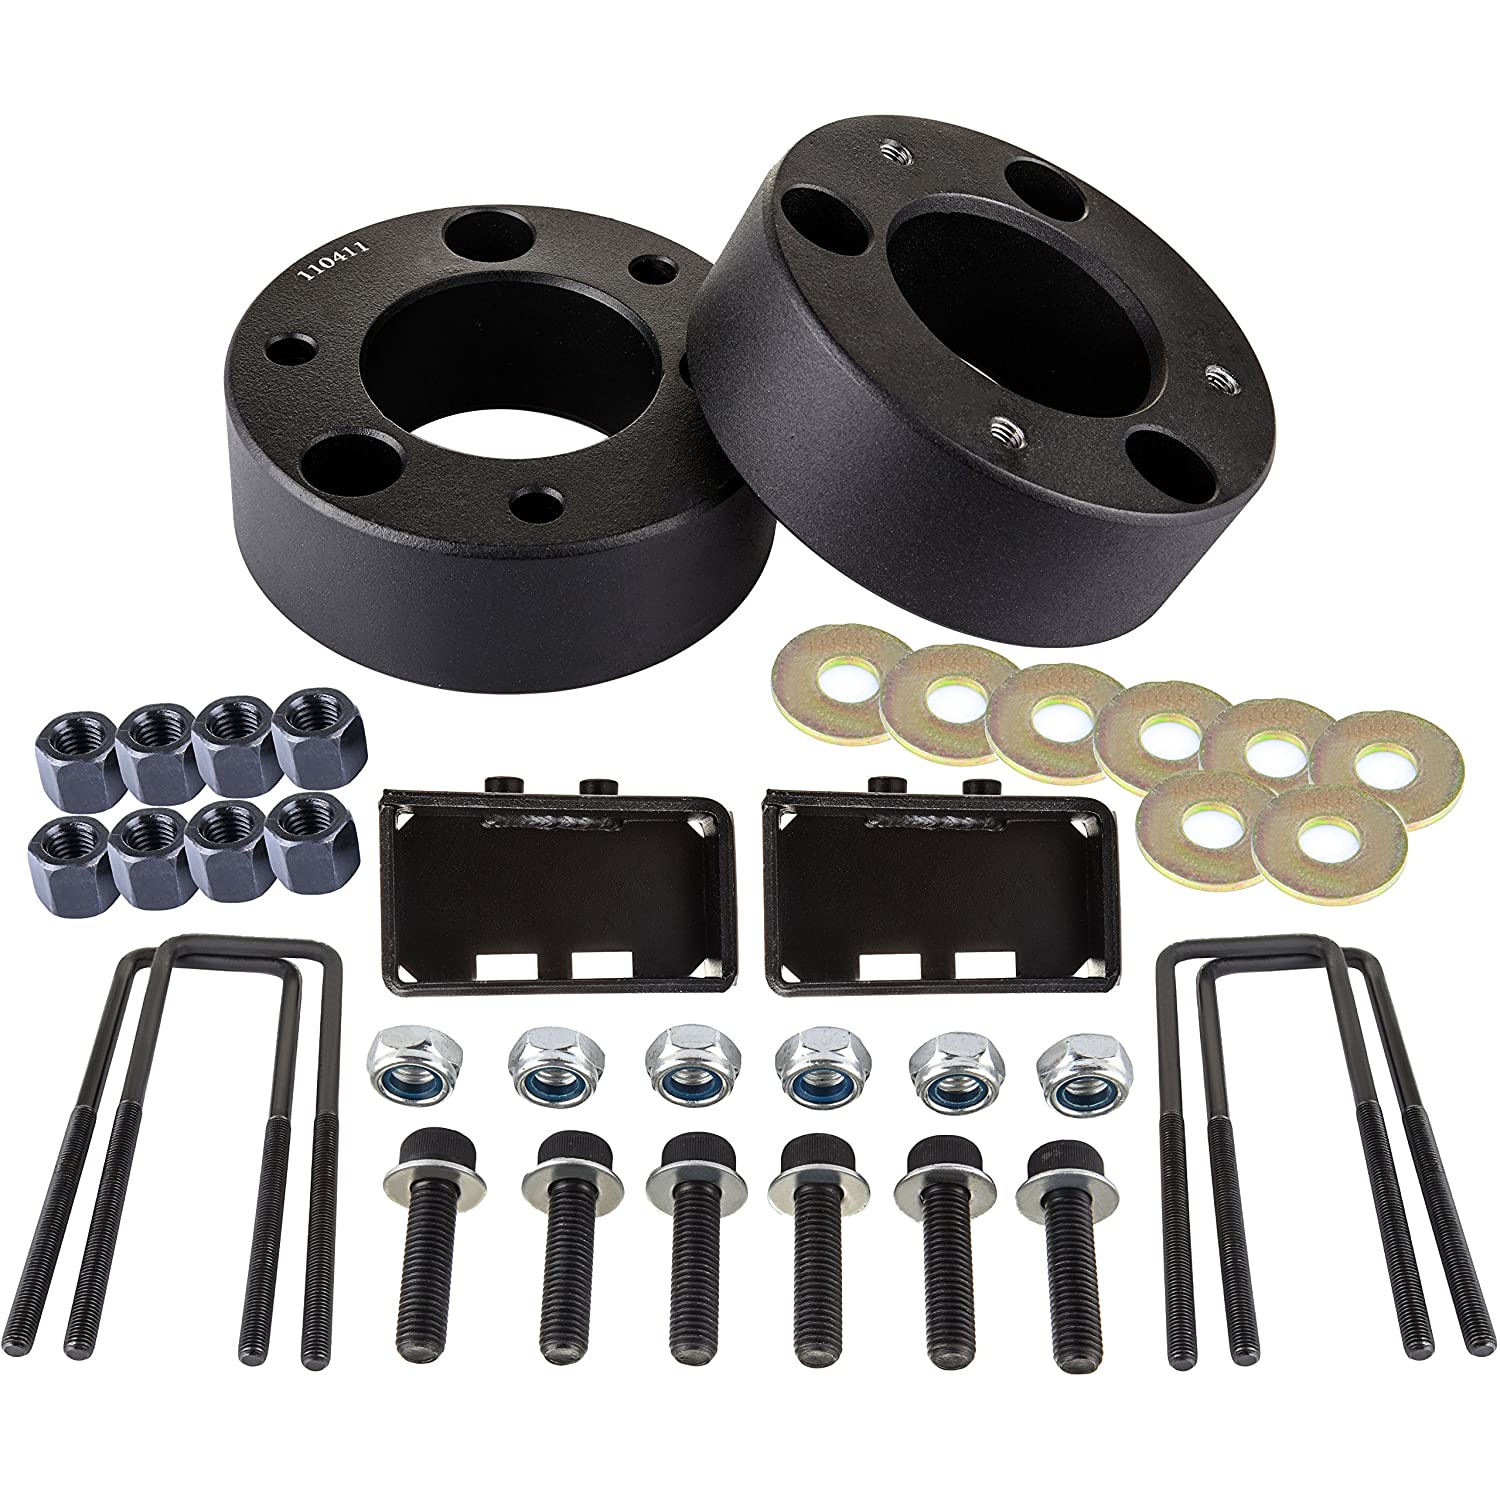 ECCPP 3 inch leveling lift kit and 2 inch leveling lift kit Strut Spacers, Raise your vehicle 3' Front and 2' Rear for 2004-2014 Ford F150 4WD 2WD Raise your vehicle 3 Front and 2 Rear for 2004-2014 Ford F150 4WD 2WD BHBS0405A1446